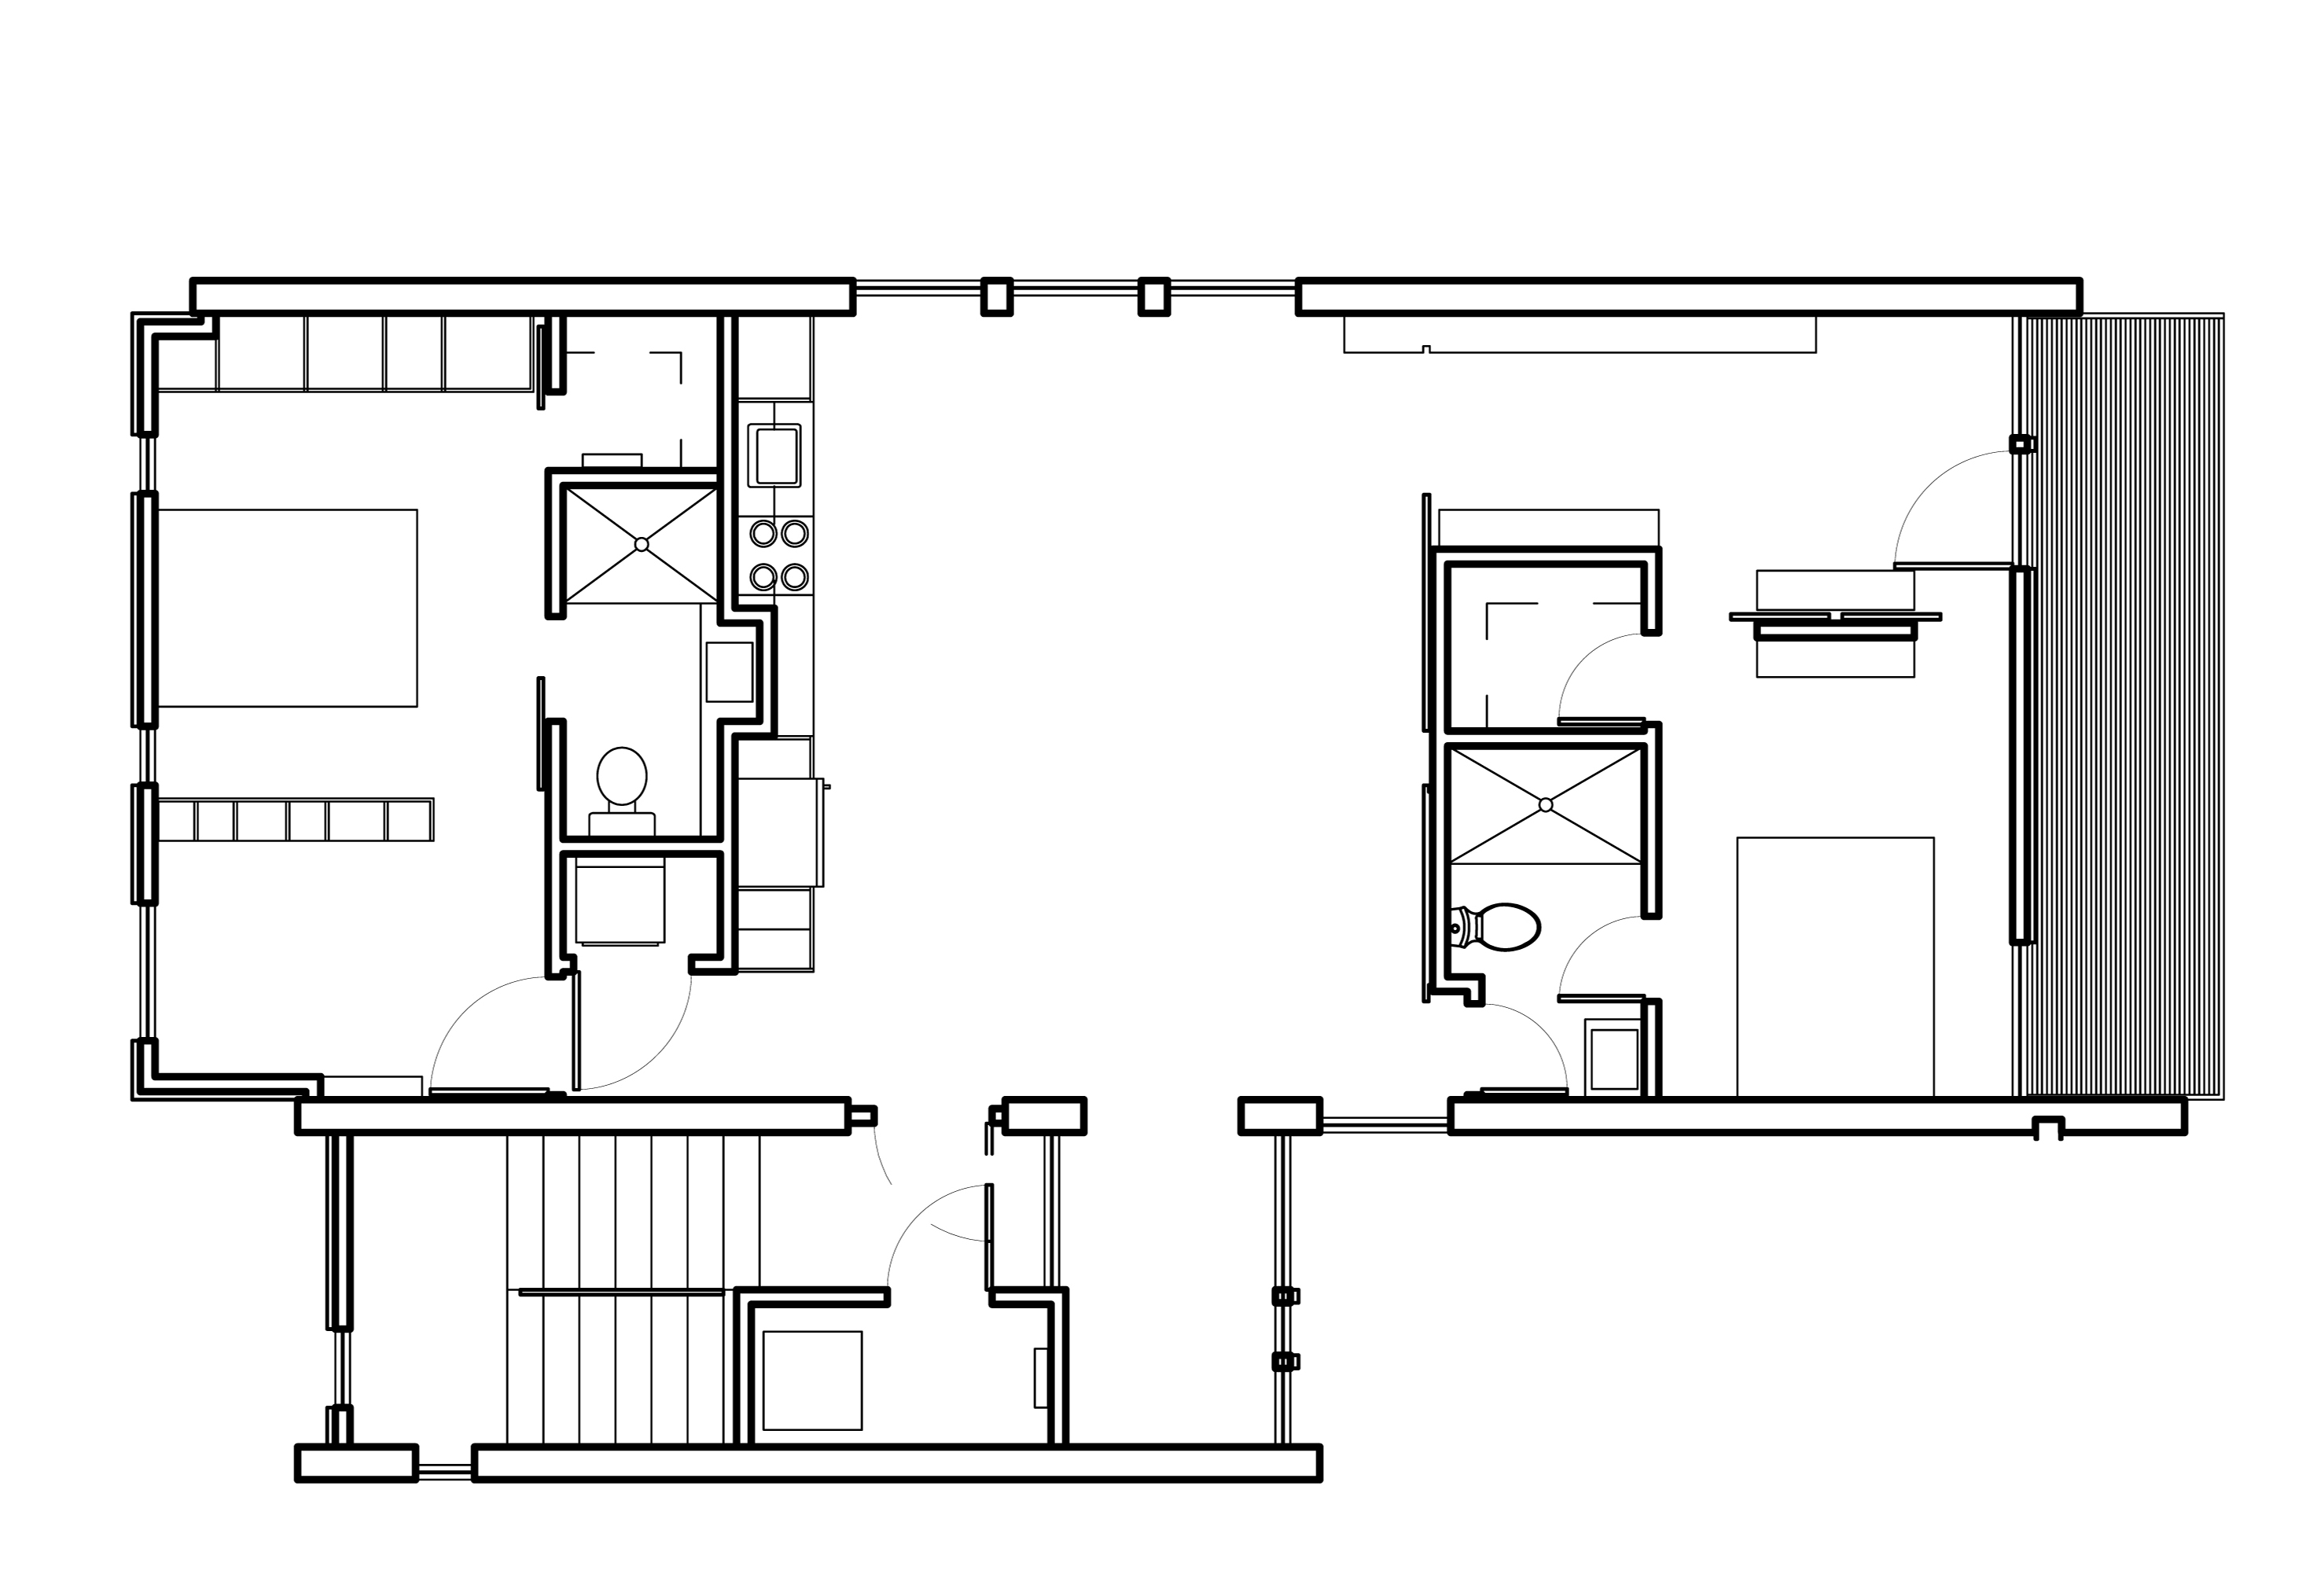 house plans contemporary home designs floor plan 02